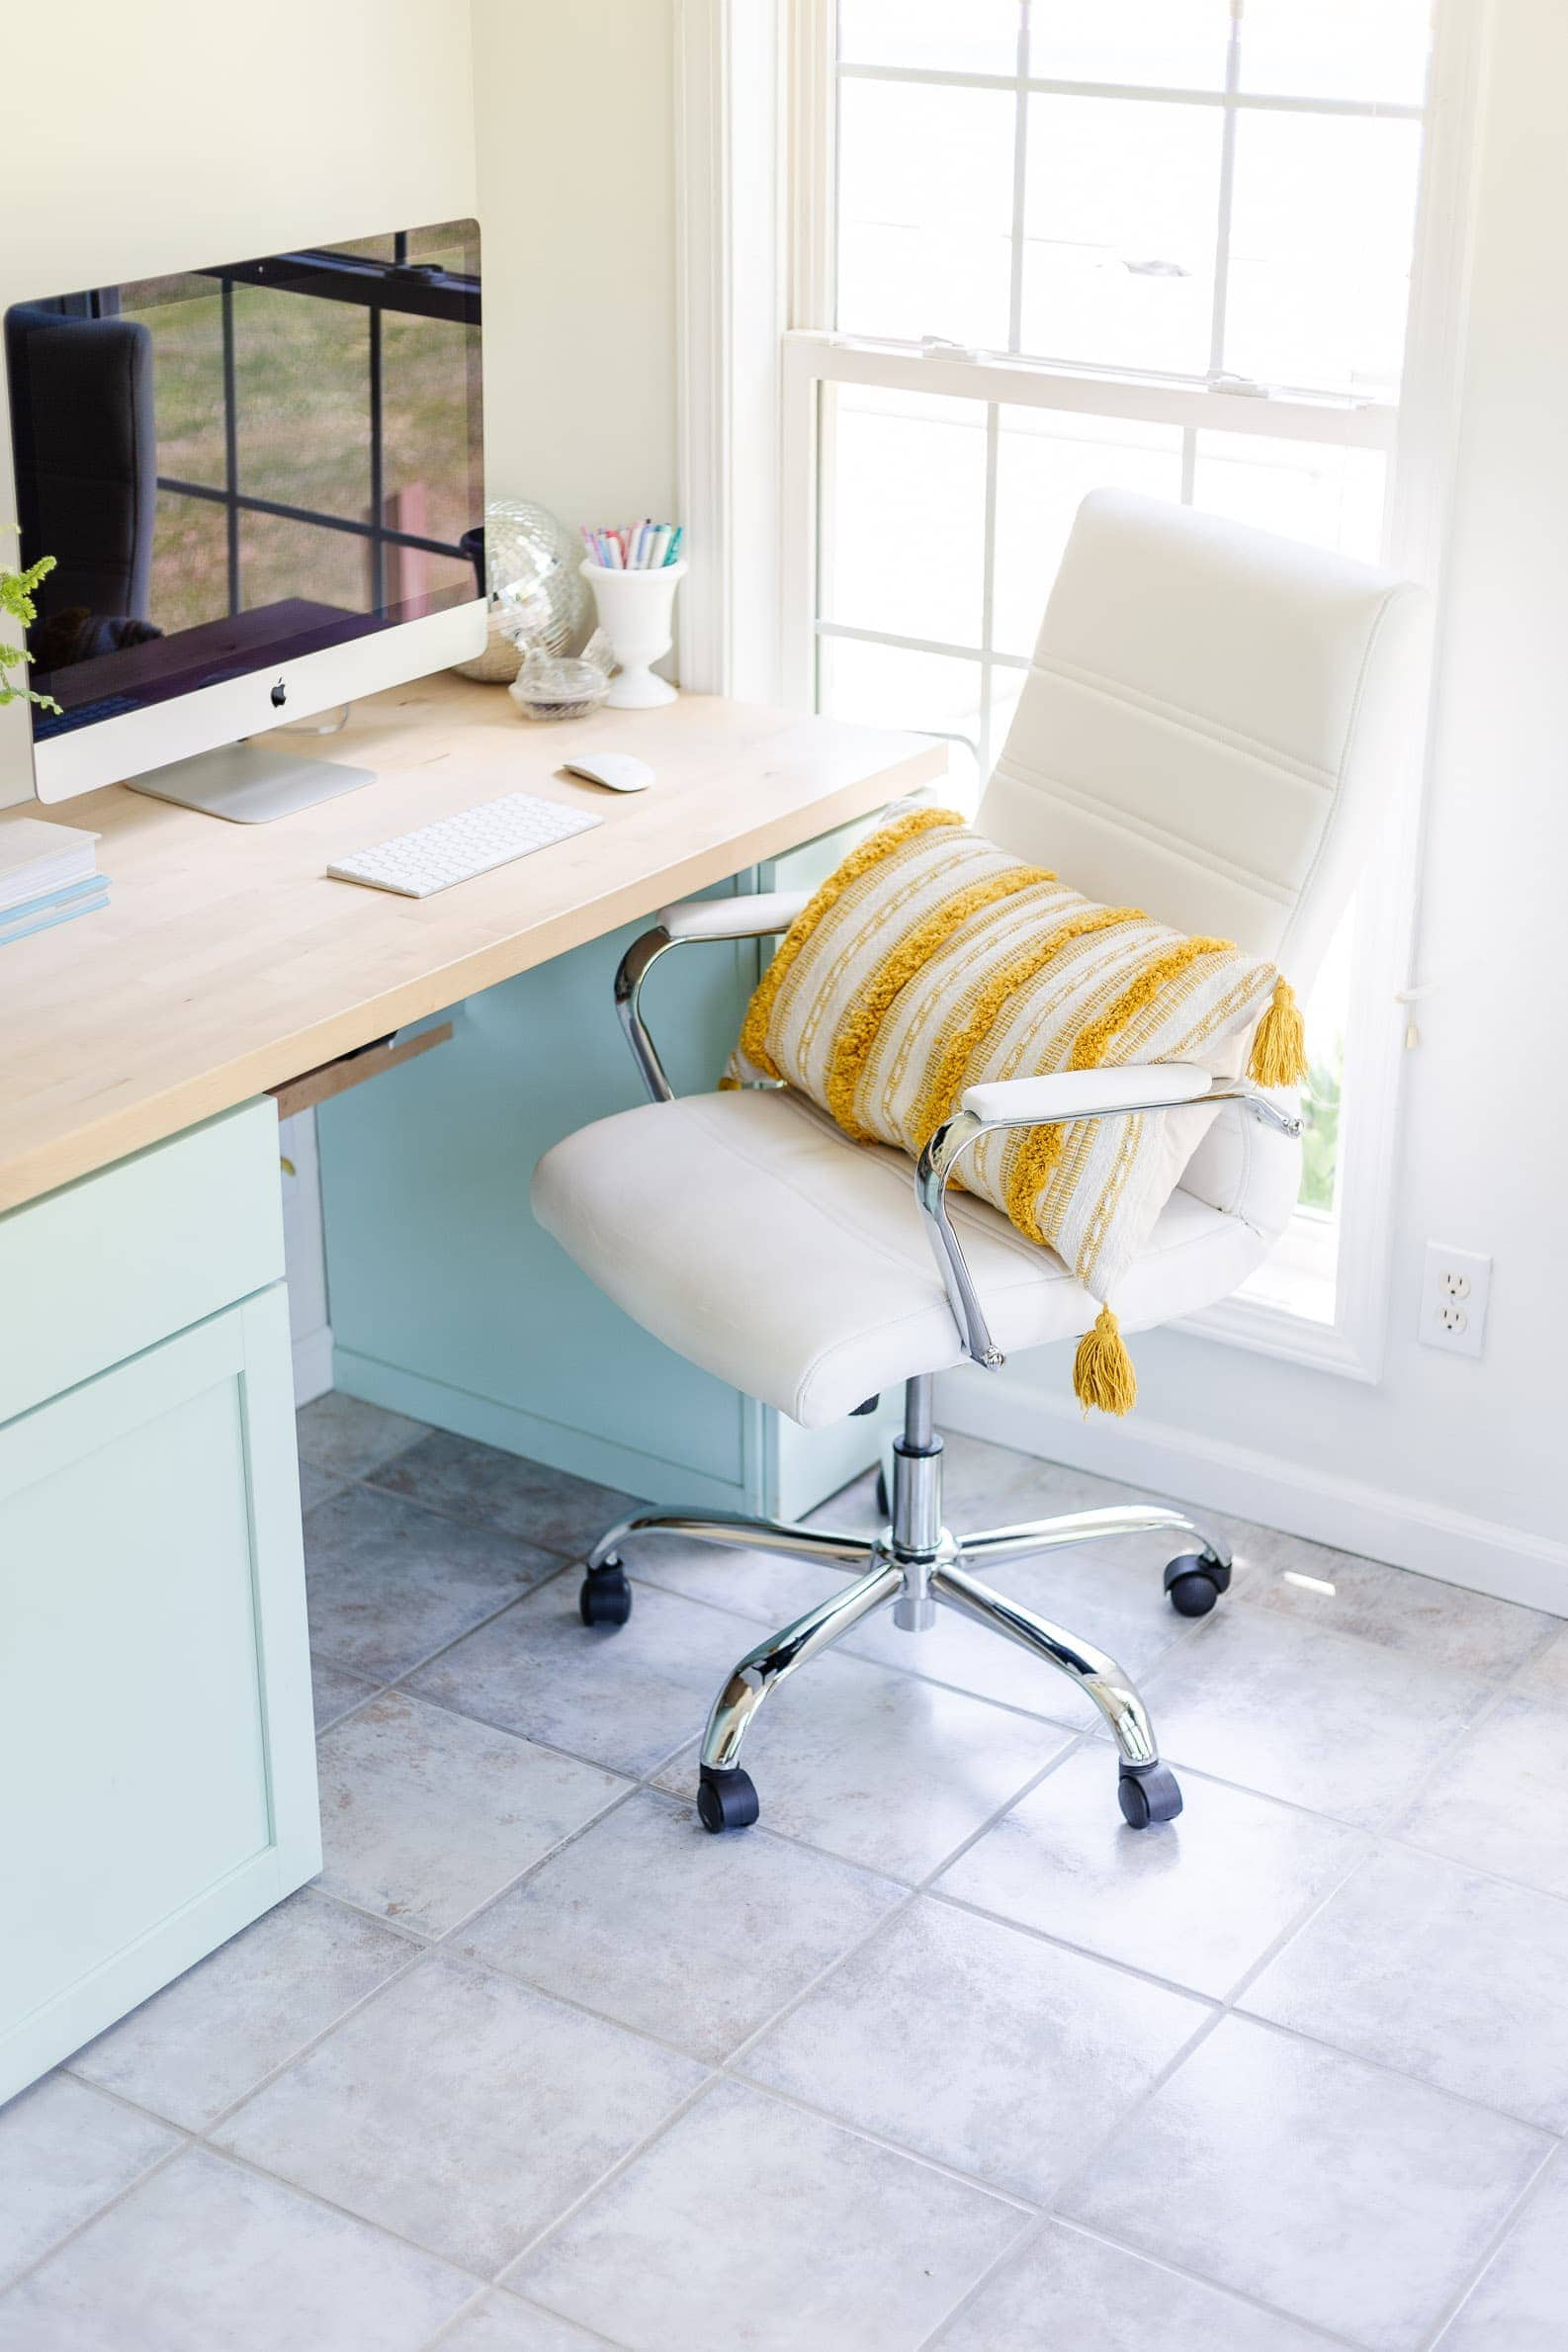 boho office makeover featuring office decorating ideas and coastal decor. White desk chair